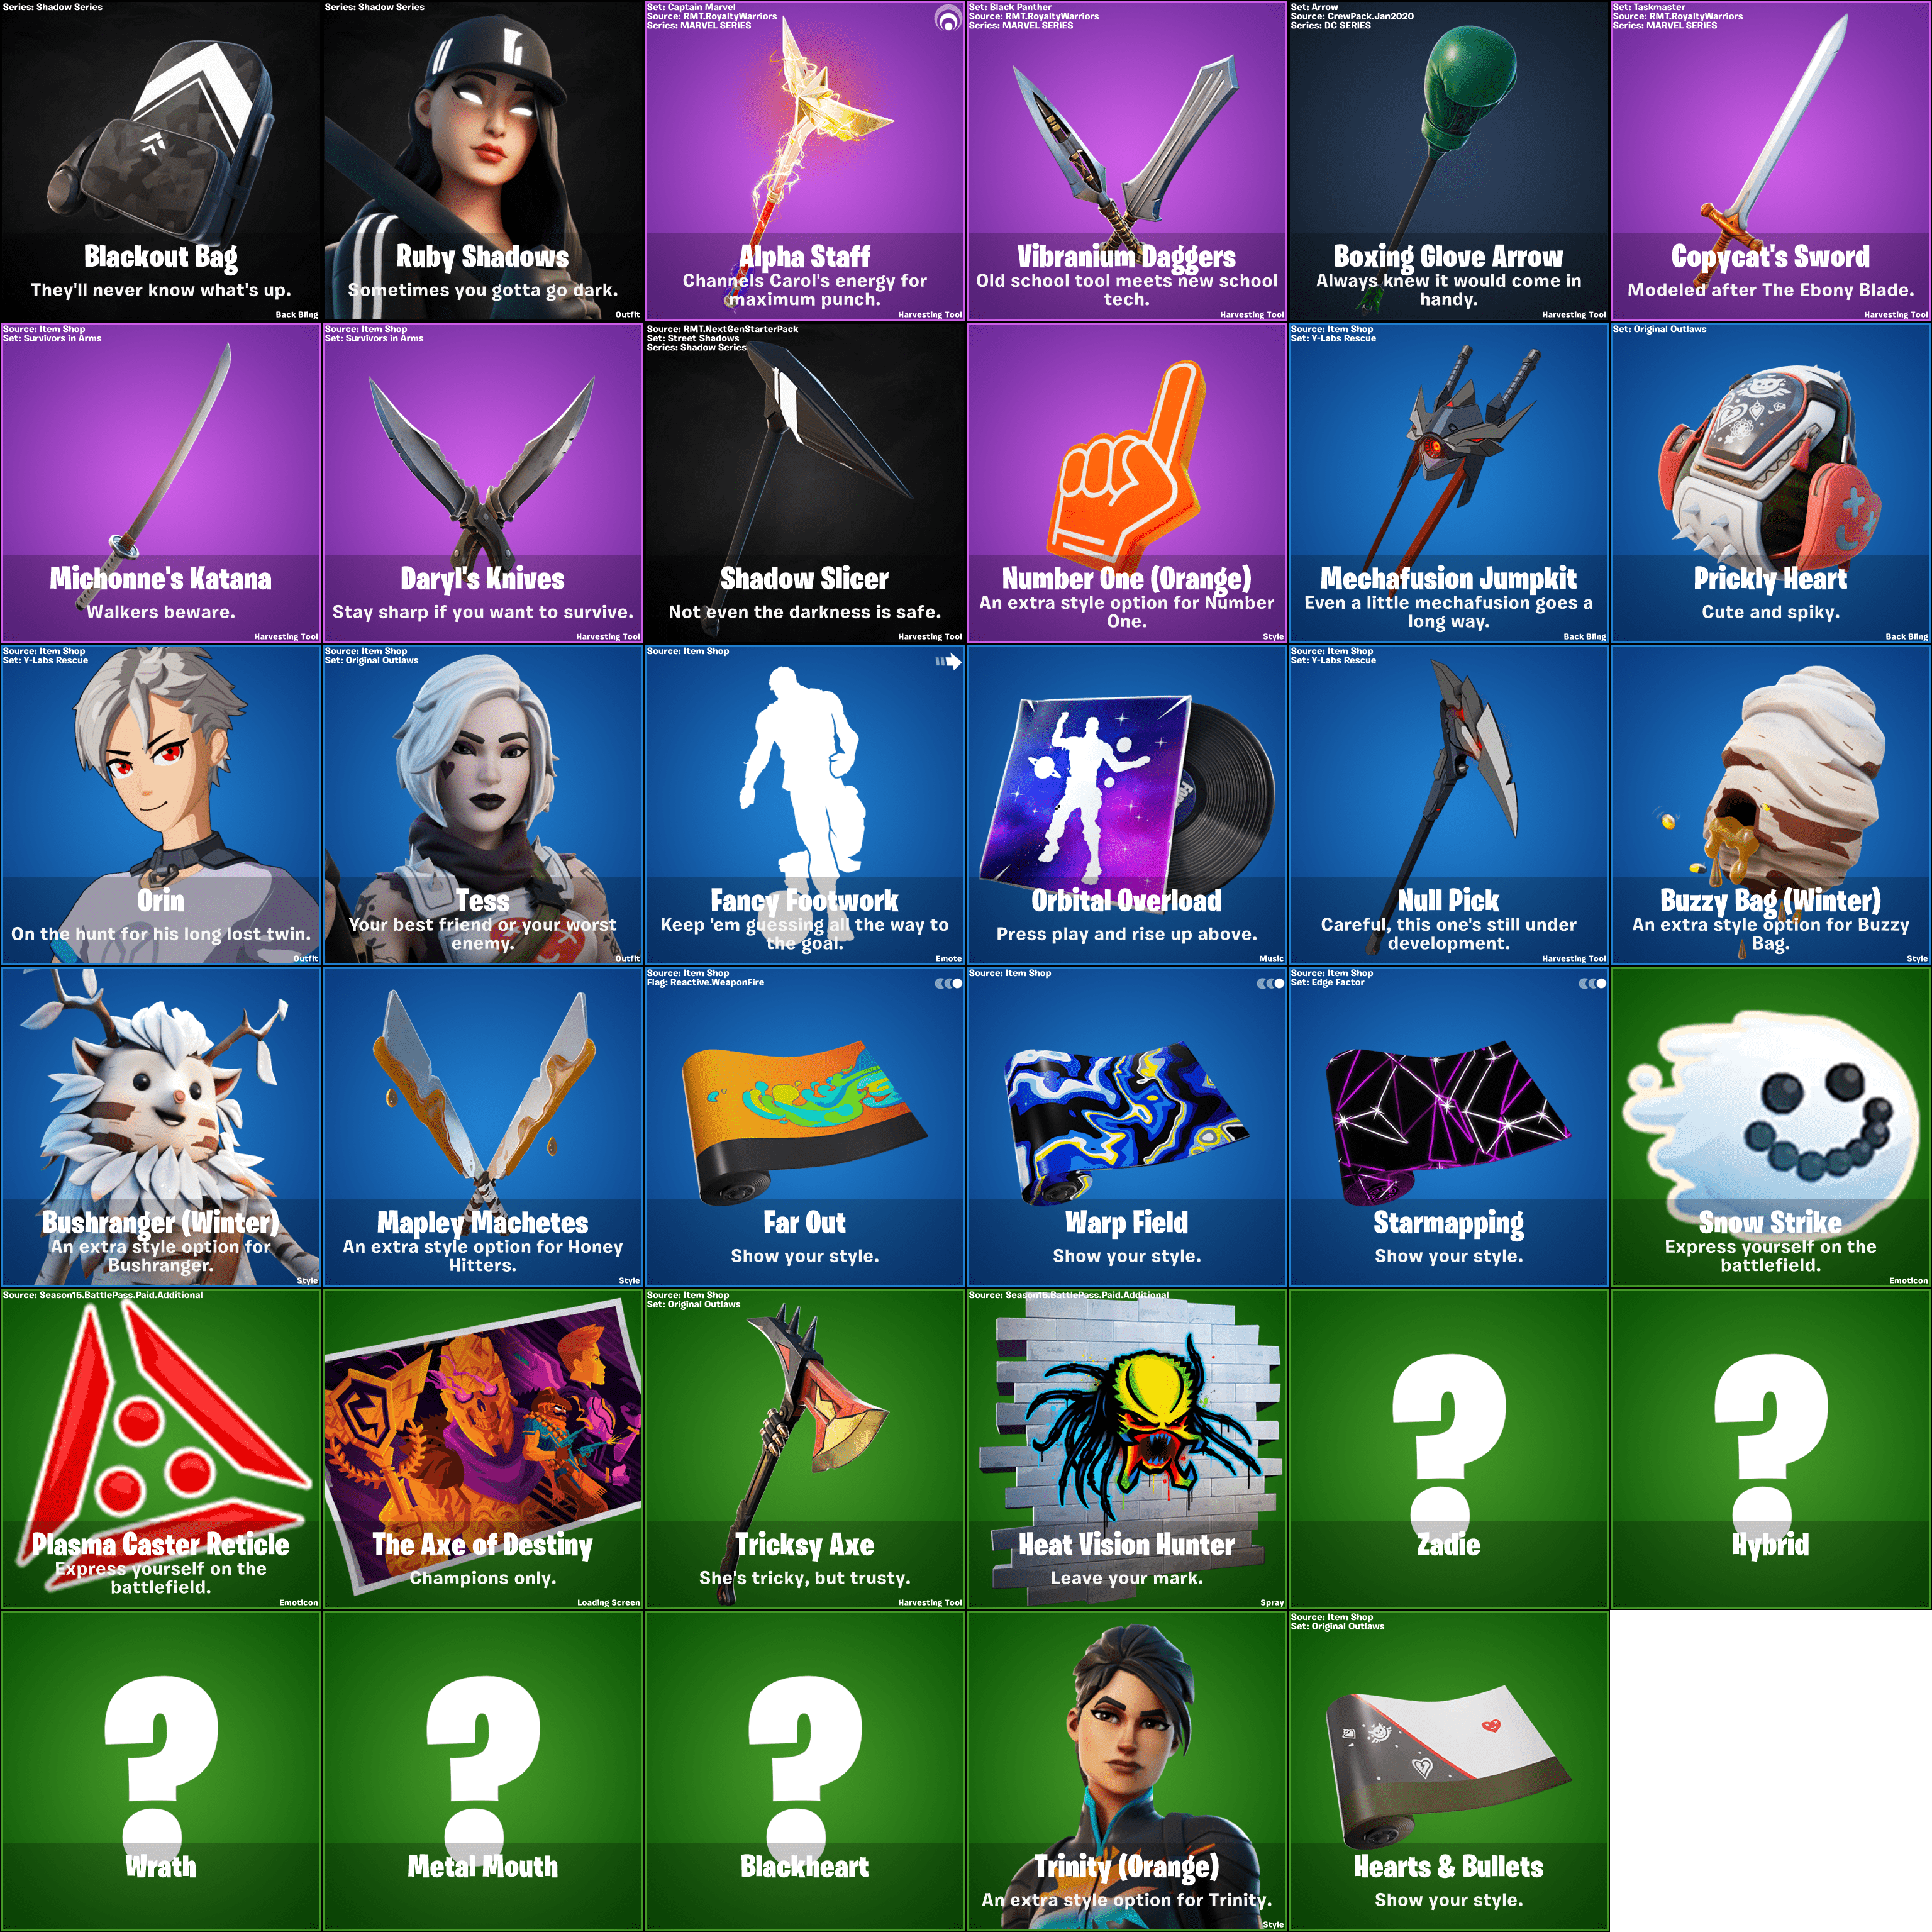 skins-patch-15-20-fortnite